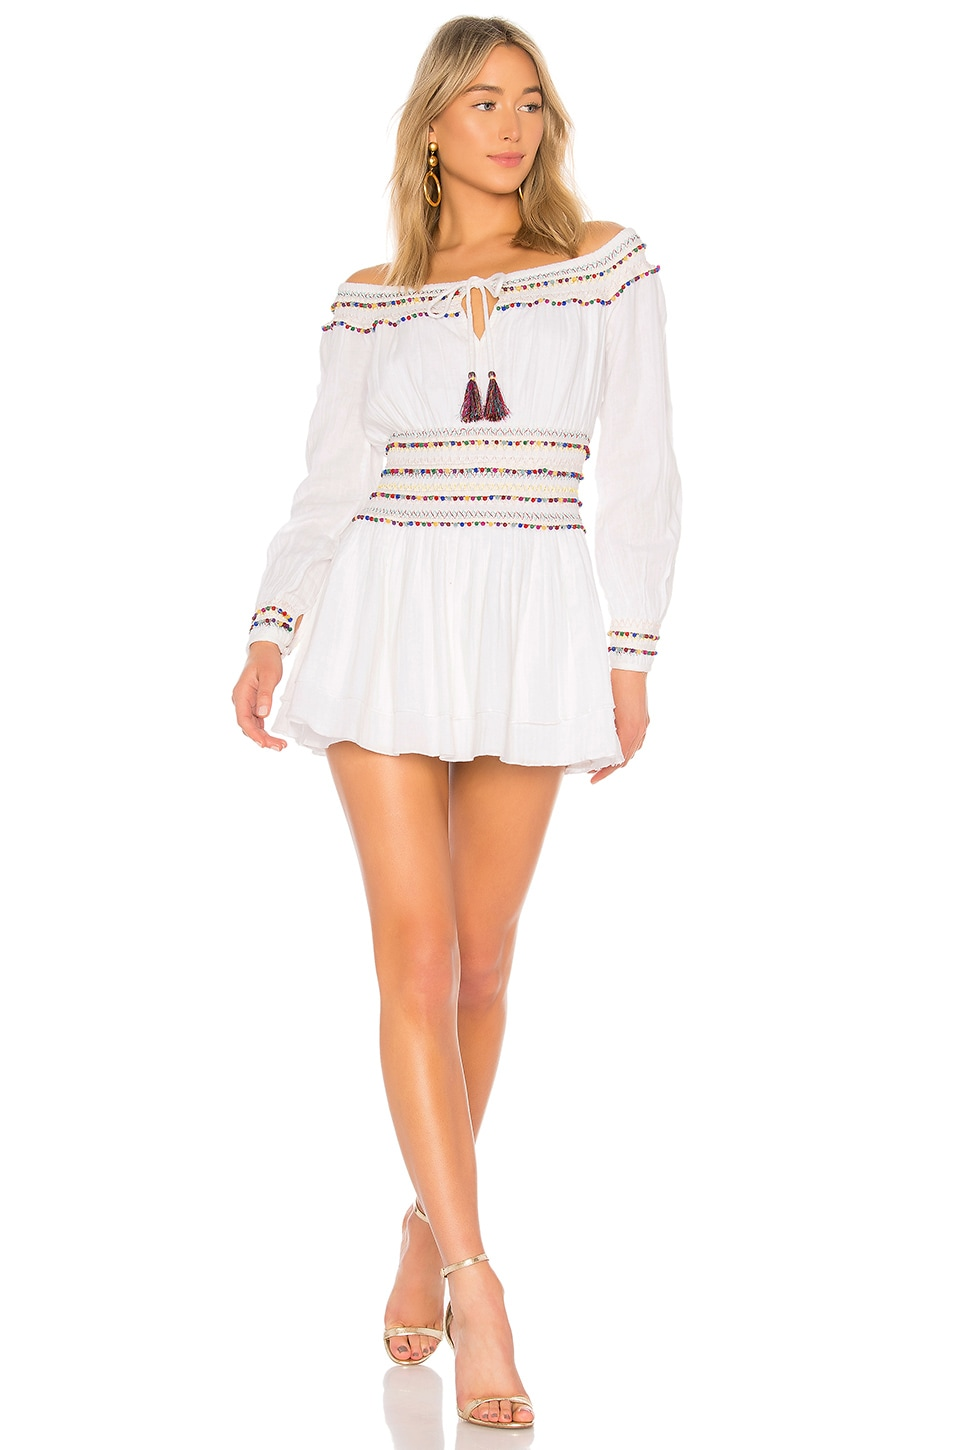 MAJORELLE Carly Marie Dress in White Multi